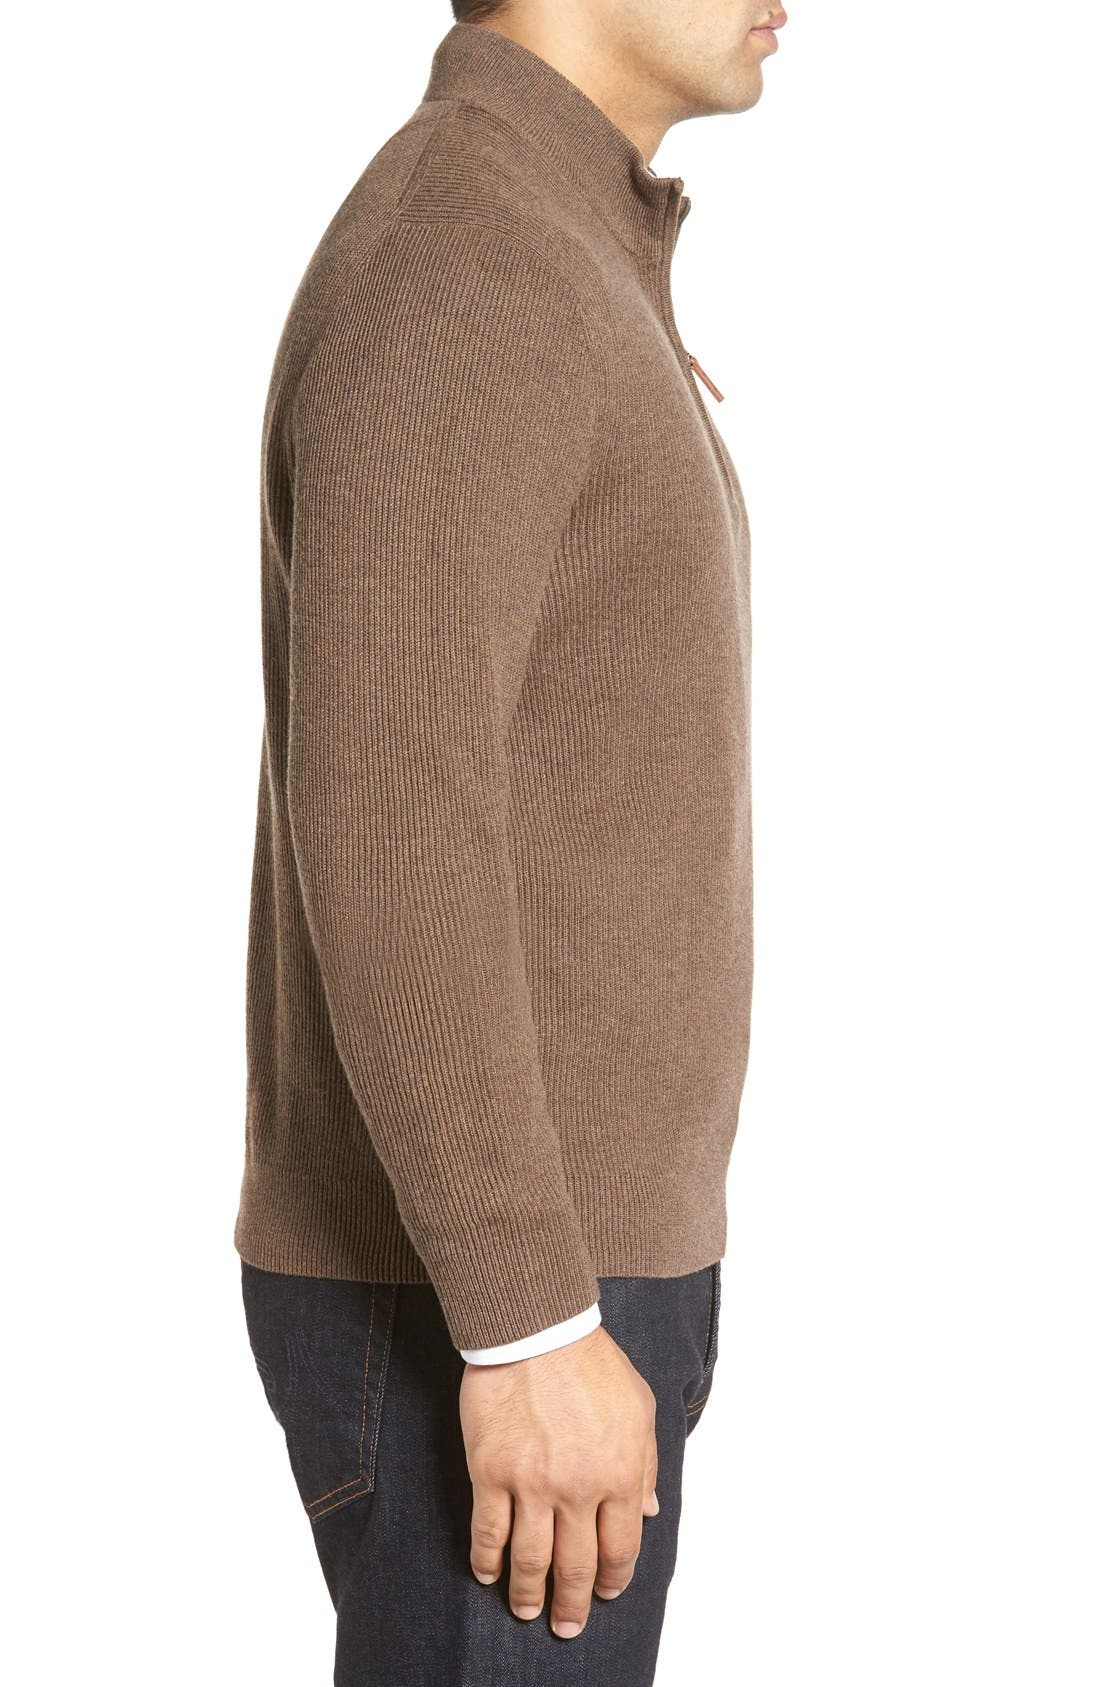 Alternate Image 3  - Nordstrom Men's Shop Cotton & Cashmere Rib Knit Sweater (Regular & Tall)